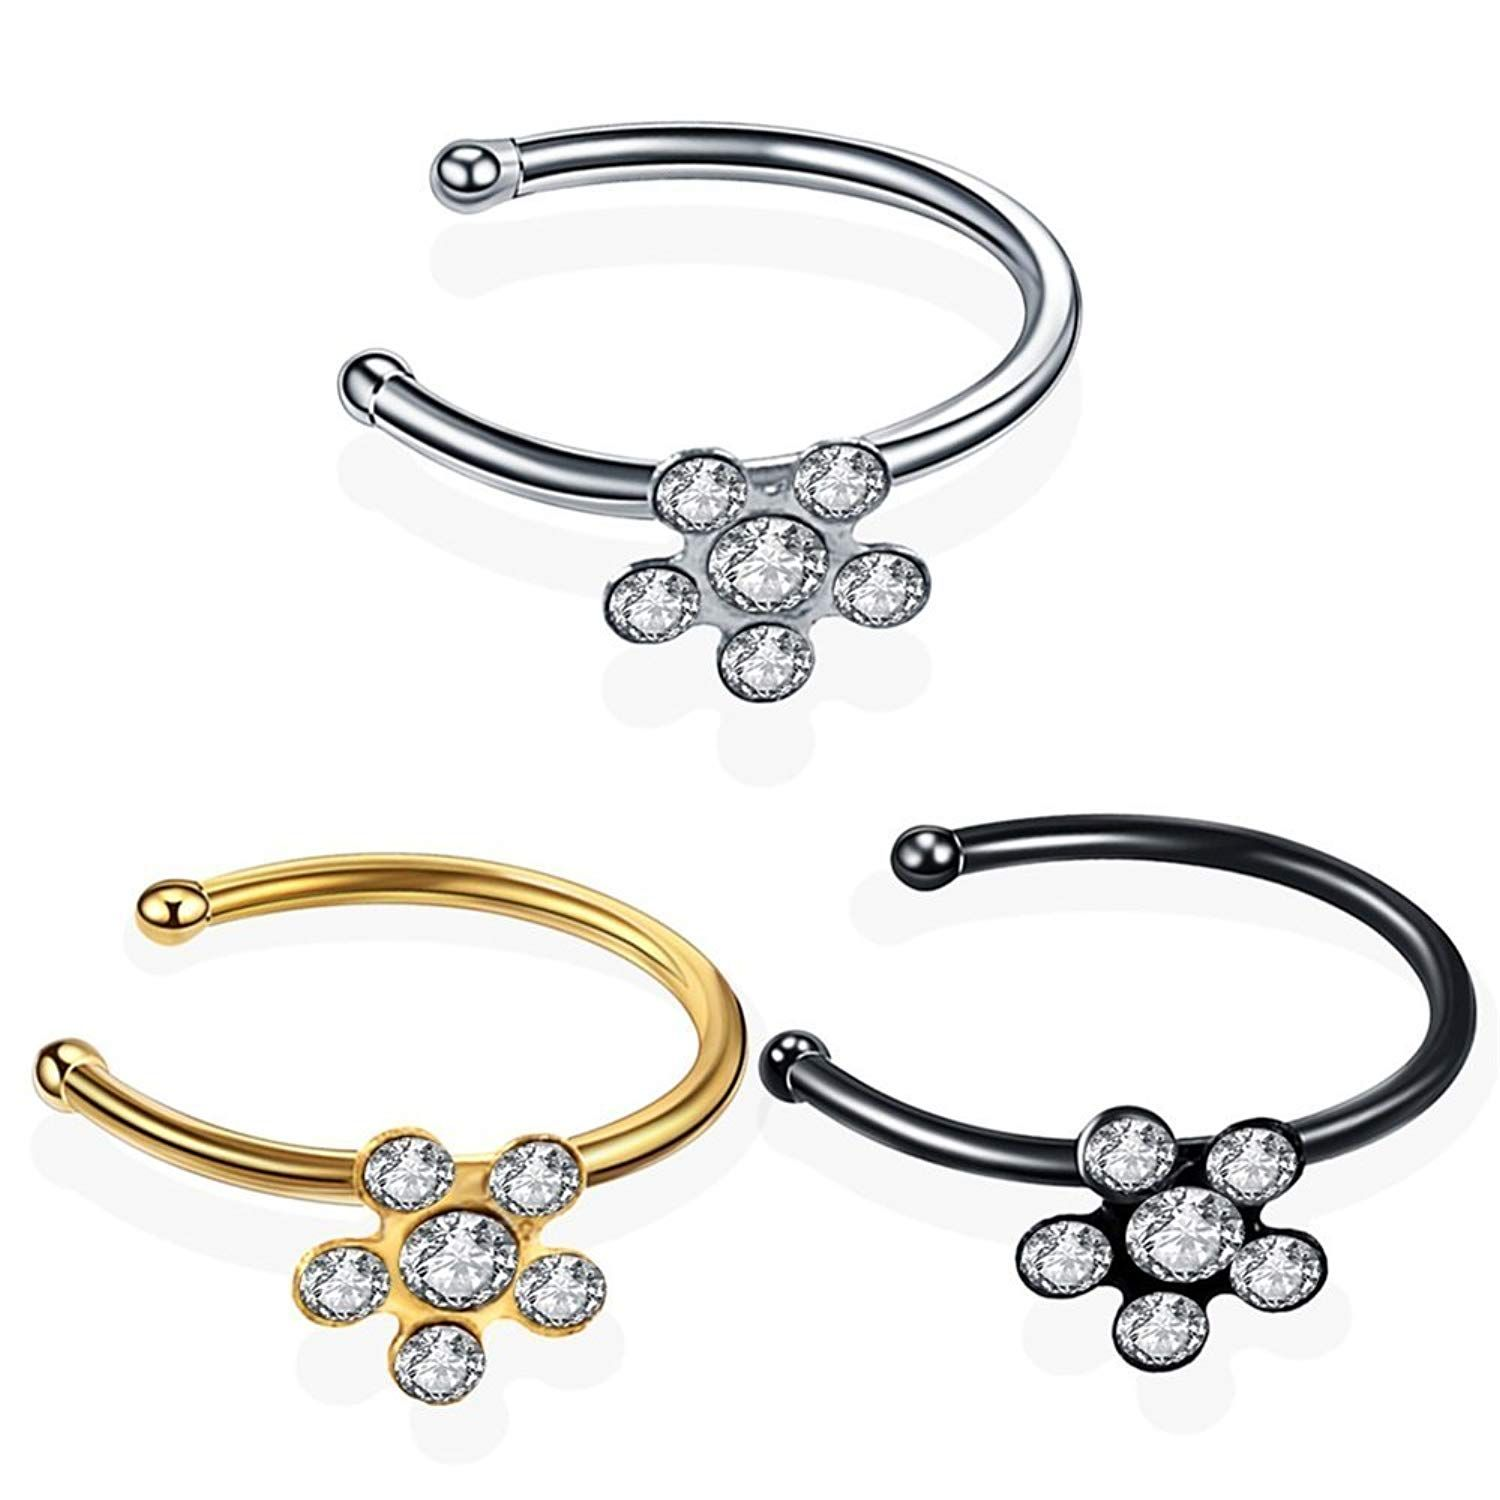 Crust around nose piercing  Zhang Trading Co Ltd PCS Set Nose Stud Open Hoop Rings with